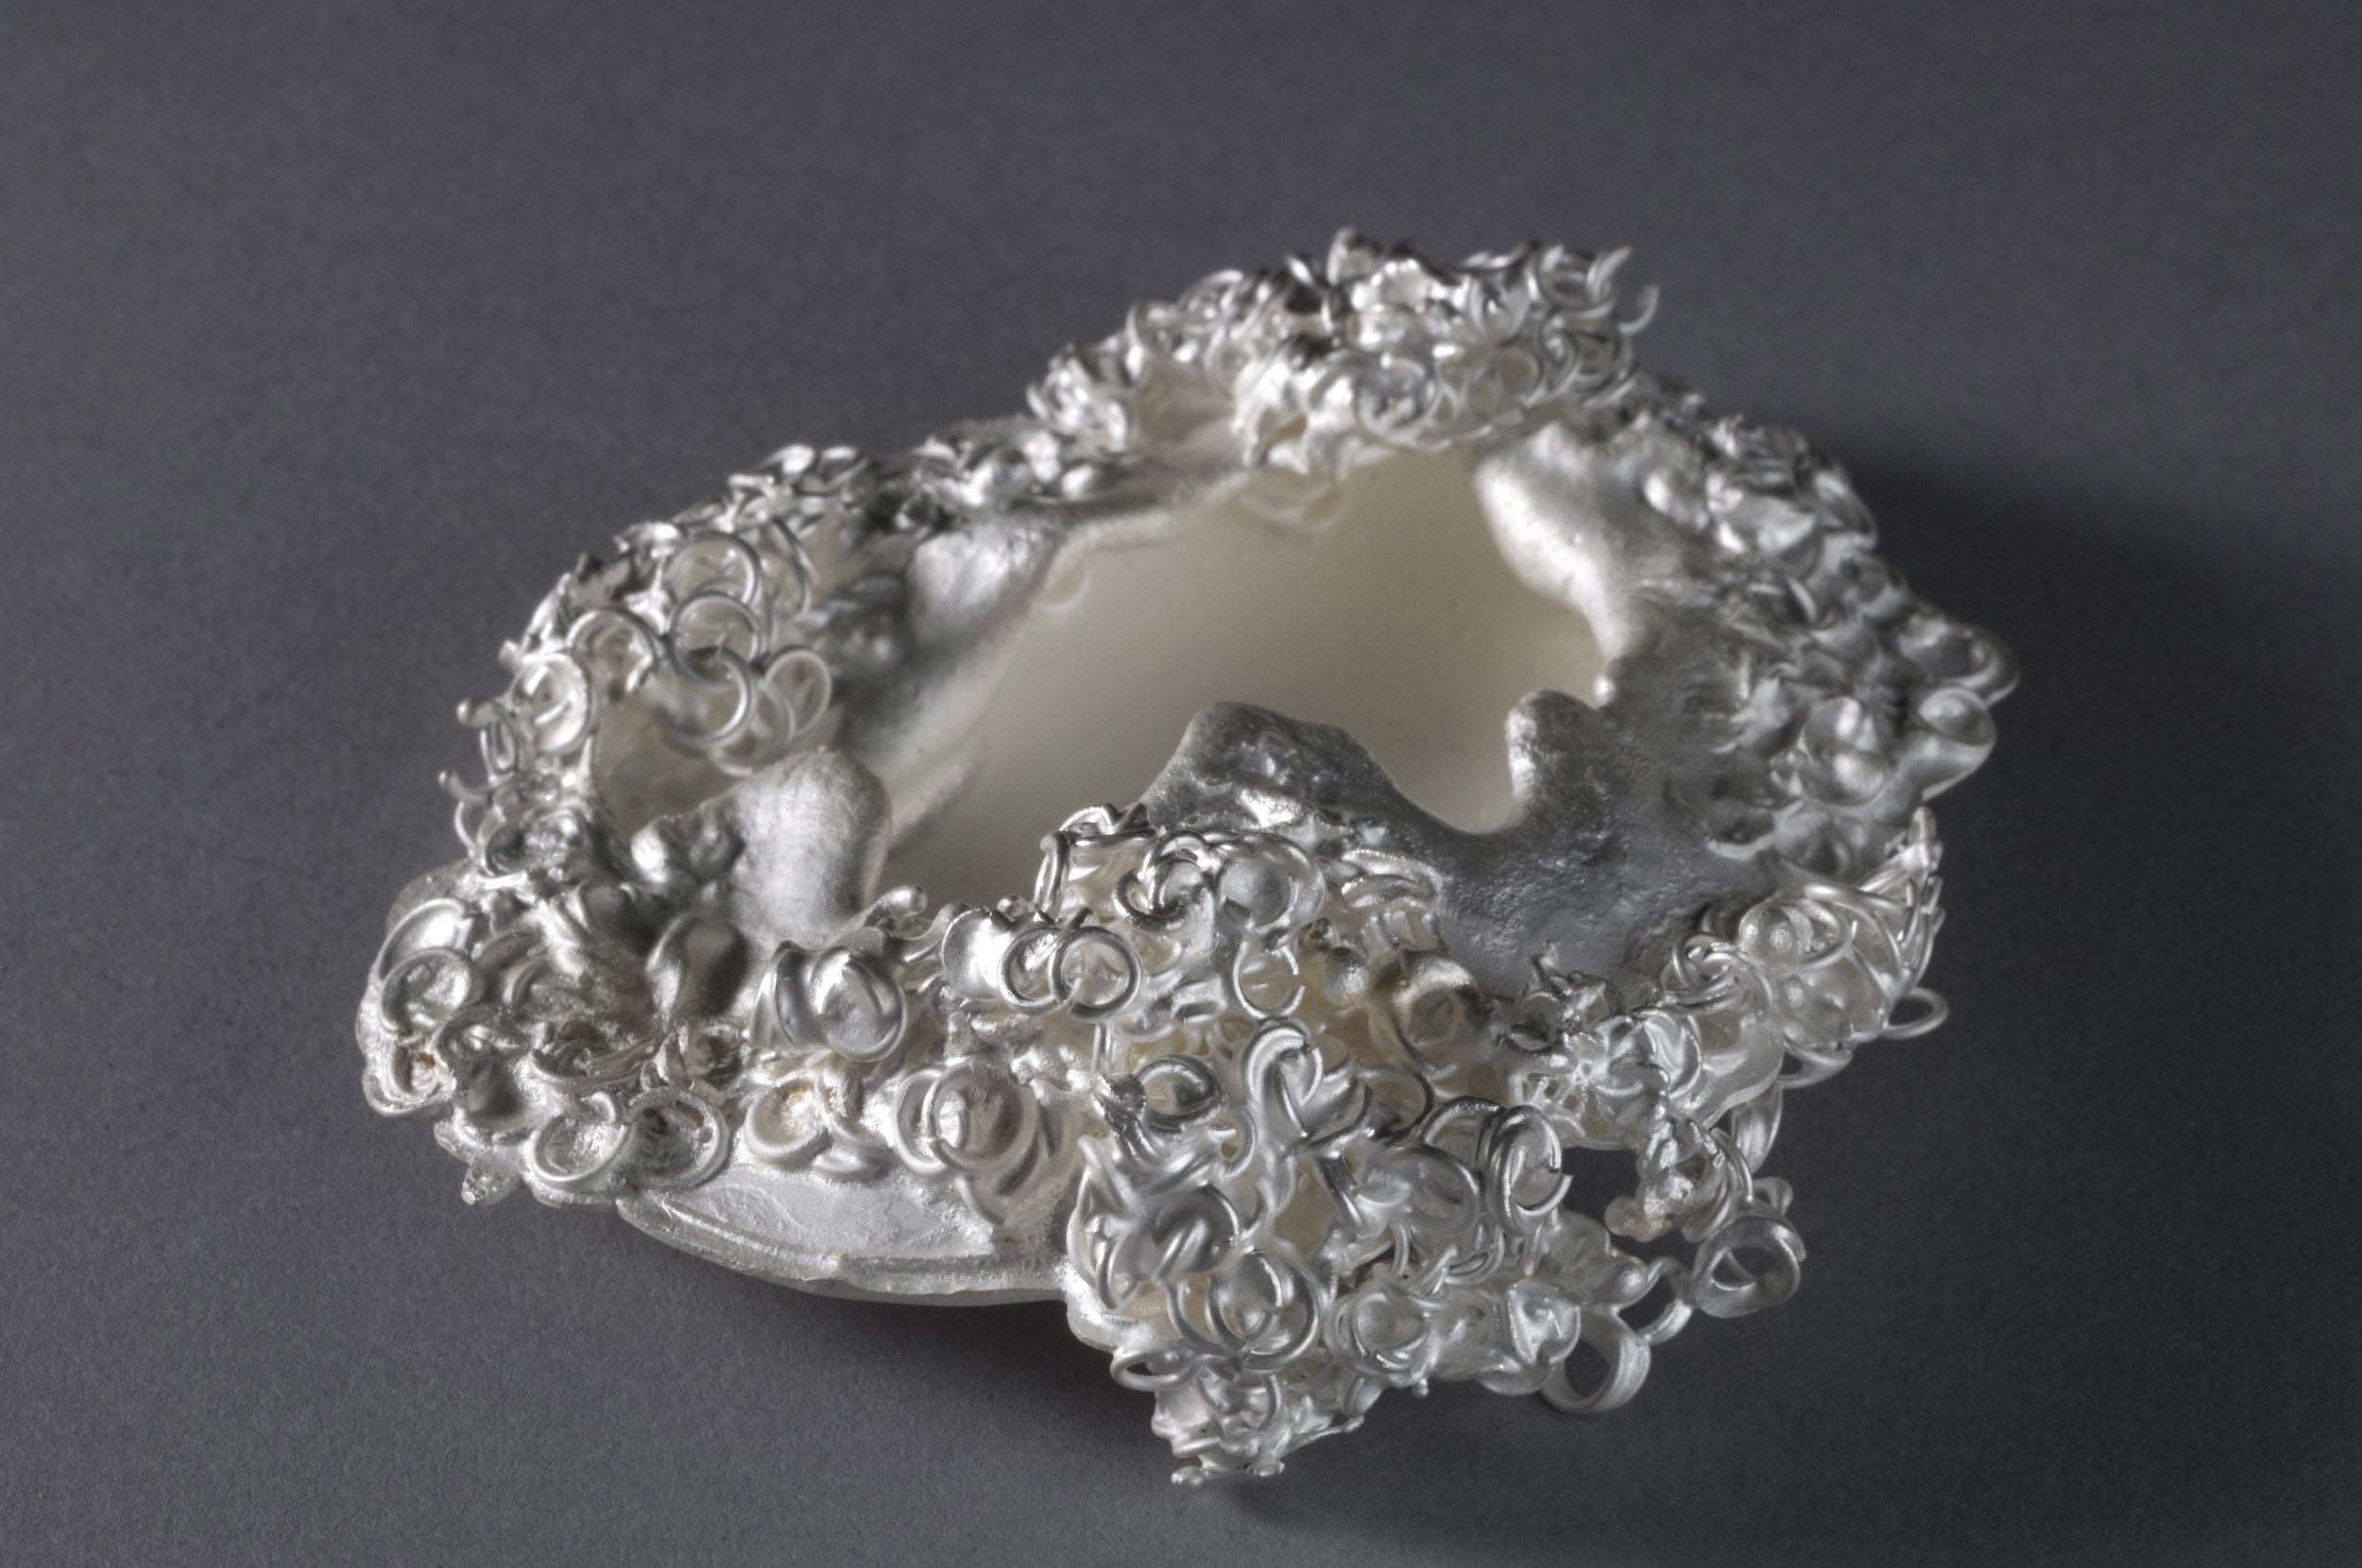 inconsolable  | Opposite Side of Right Object from Detail 10 | Silver | 2009